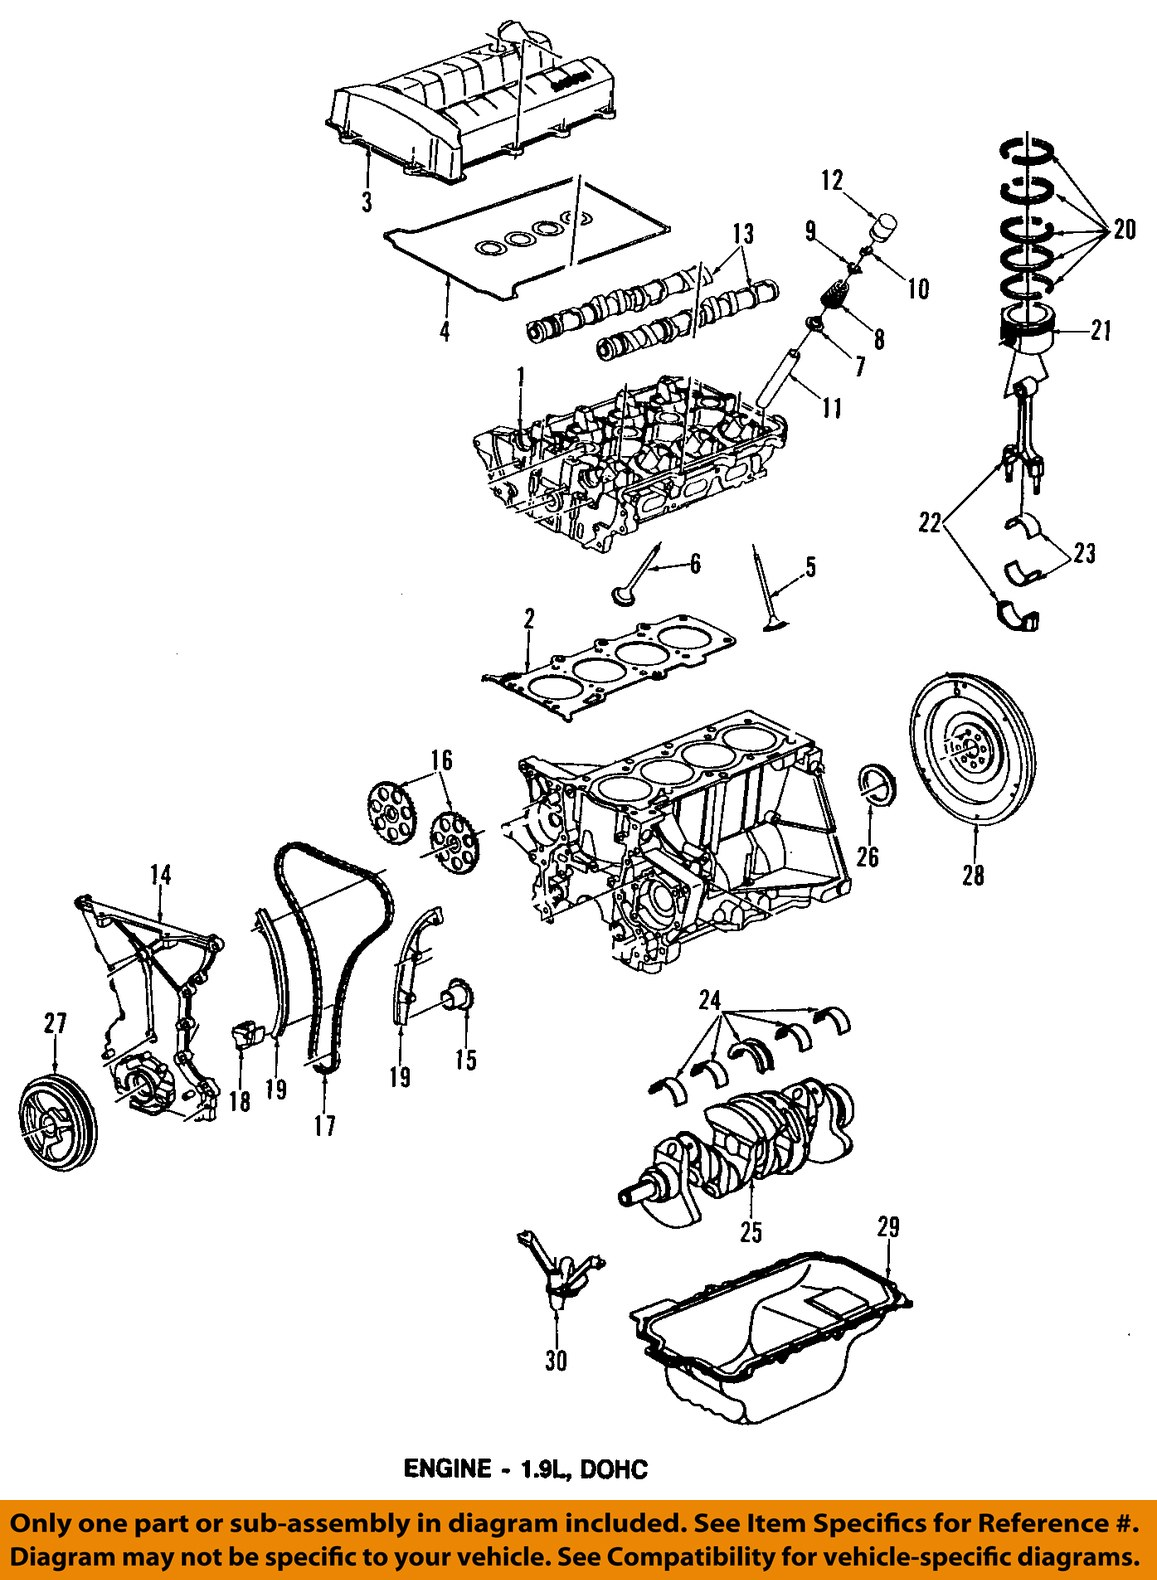 Saturn 1 9 Engine Diagram Wiring Will Be A Thing 1996 Sl2 Dohc 19 1994